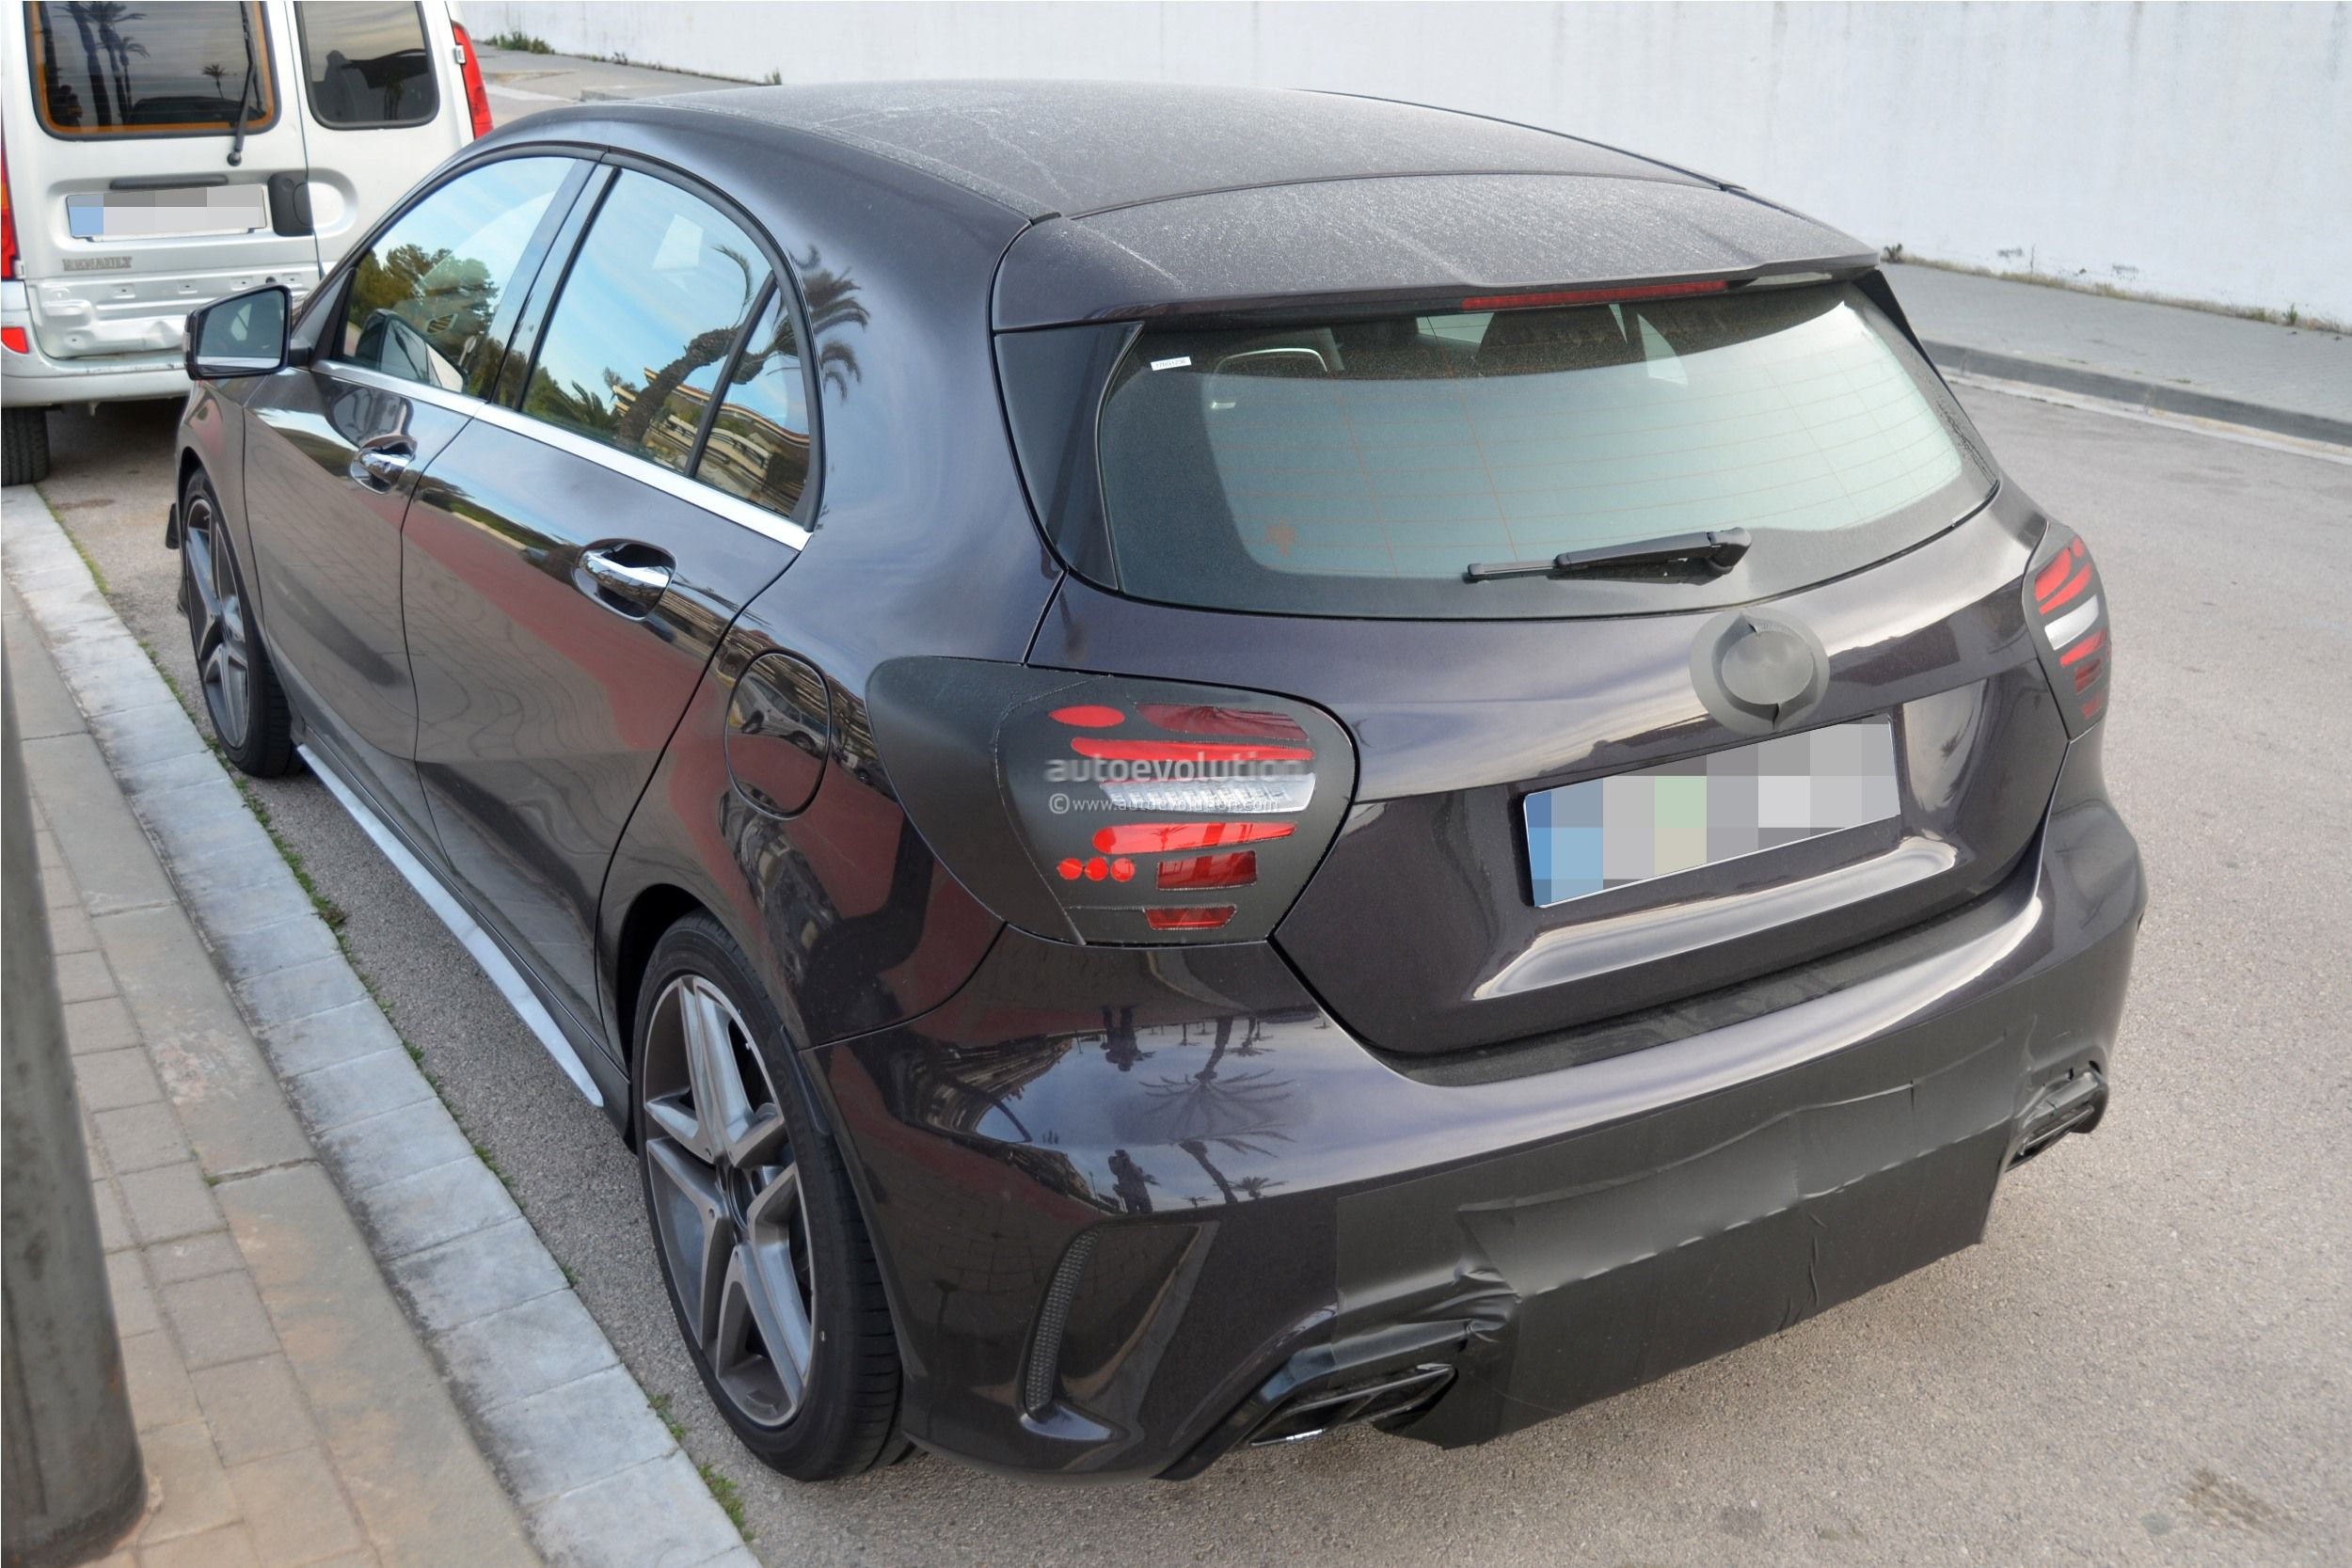 2016 - [Mercedes] Classe A restylée - Page 5 2016-mercedes-benz-a-45-amg-facelift-spied-photo-gallery_6